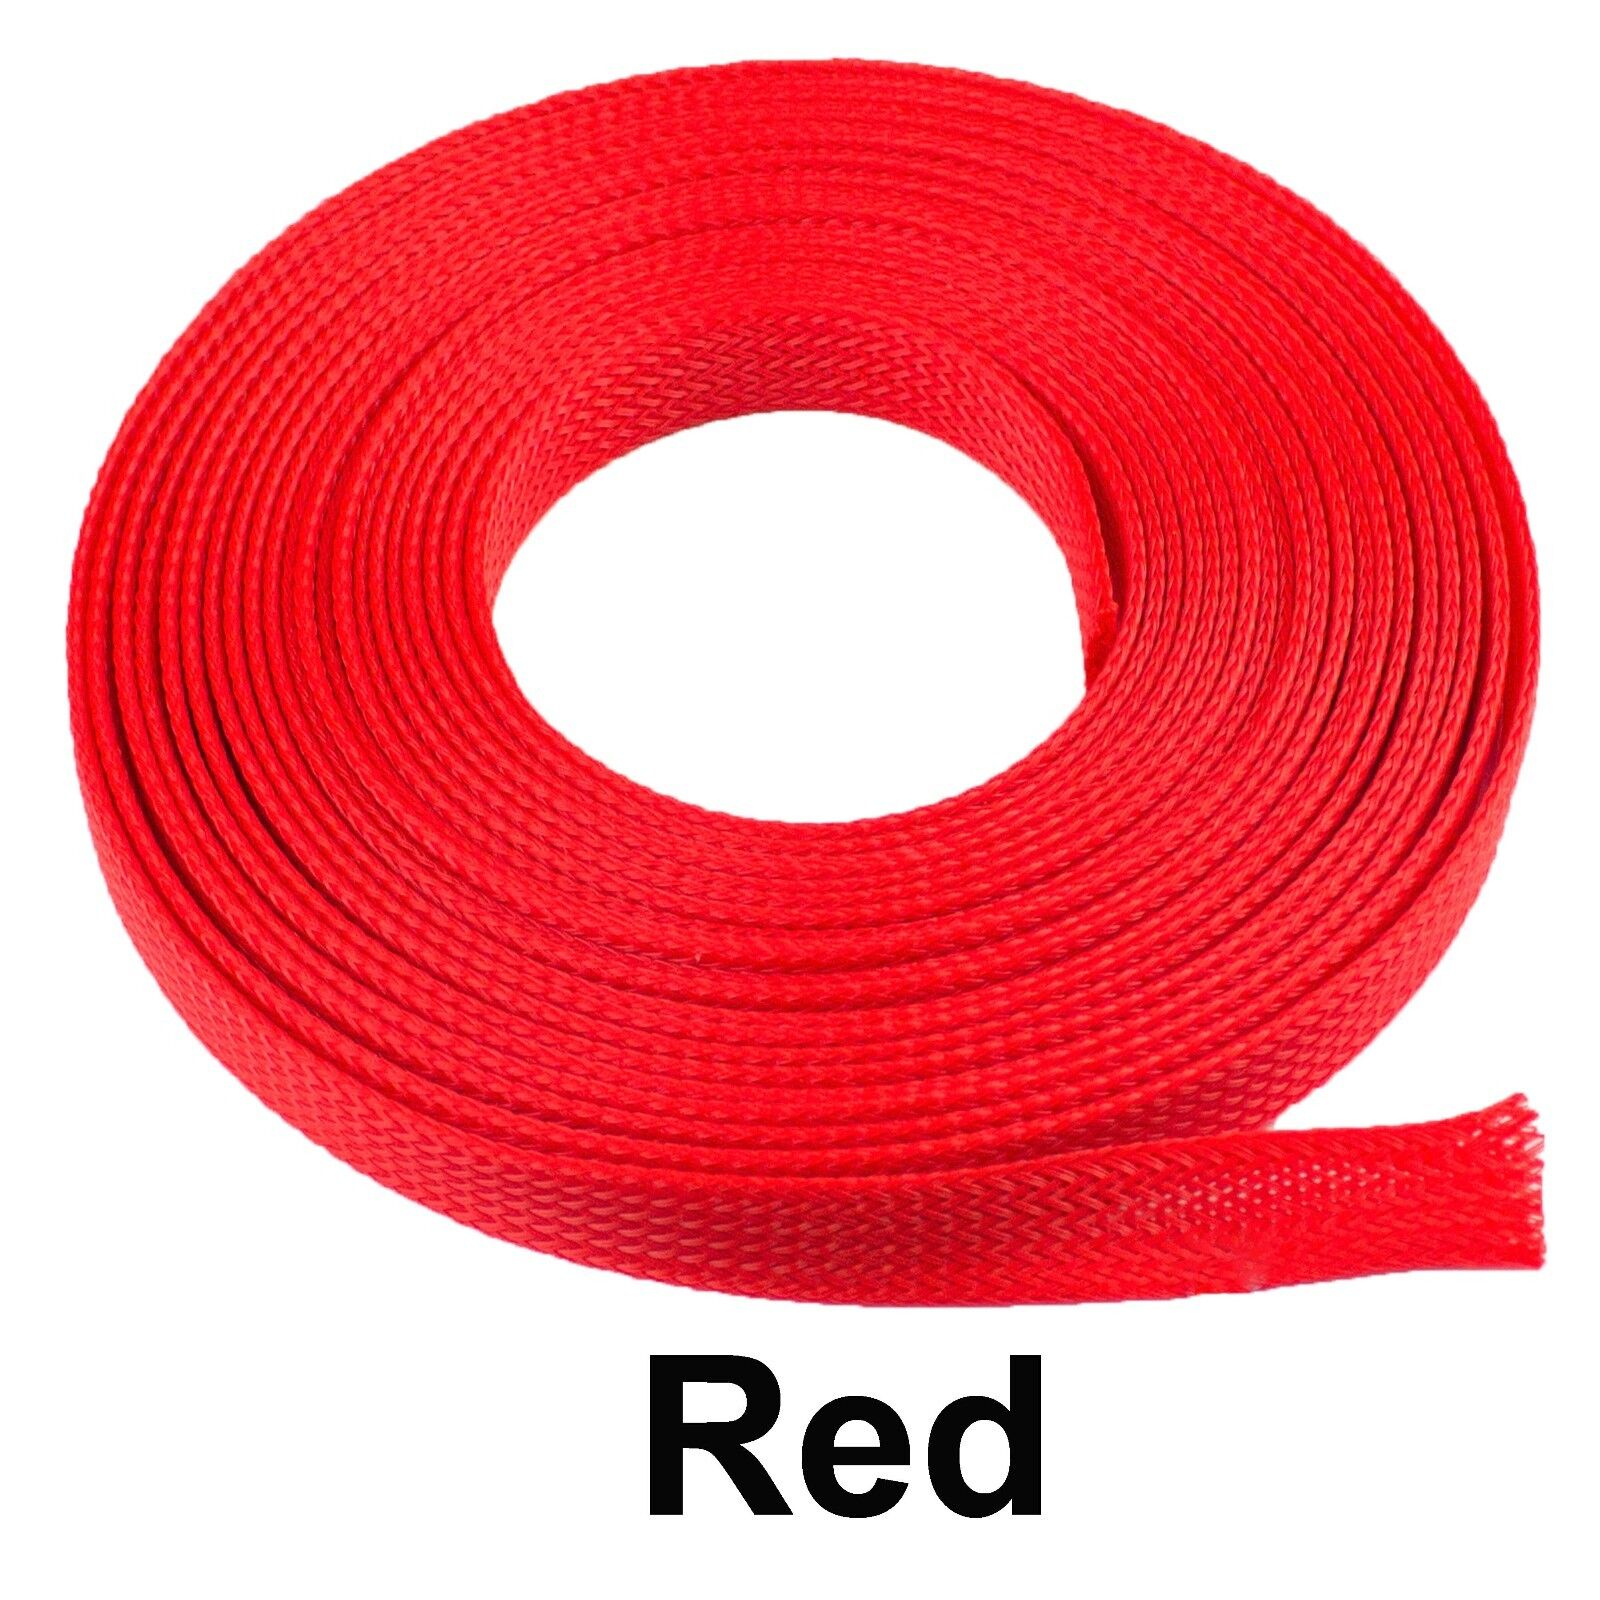 ALL SIZES & COLORS 5' FT - 100 Feet Expandable Cable Sleeving Braided Tubing LOT Red